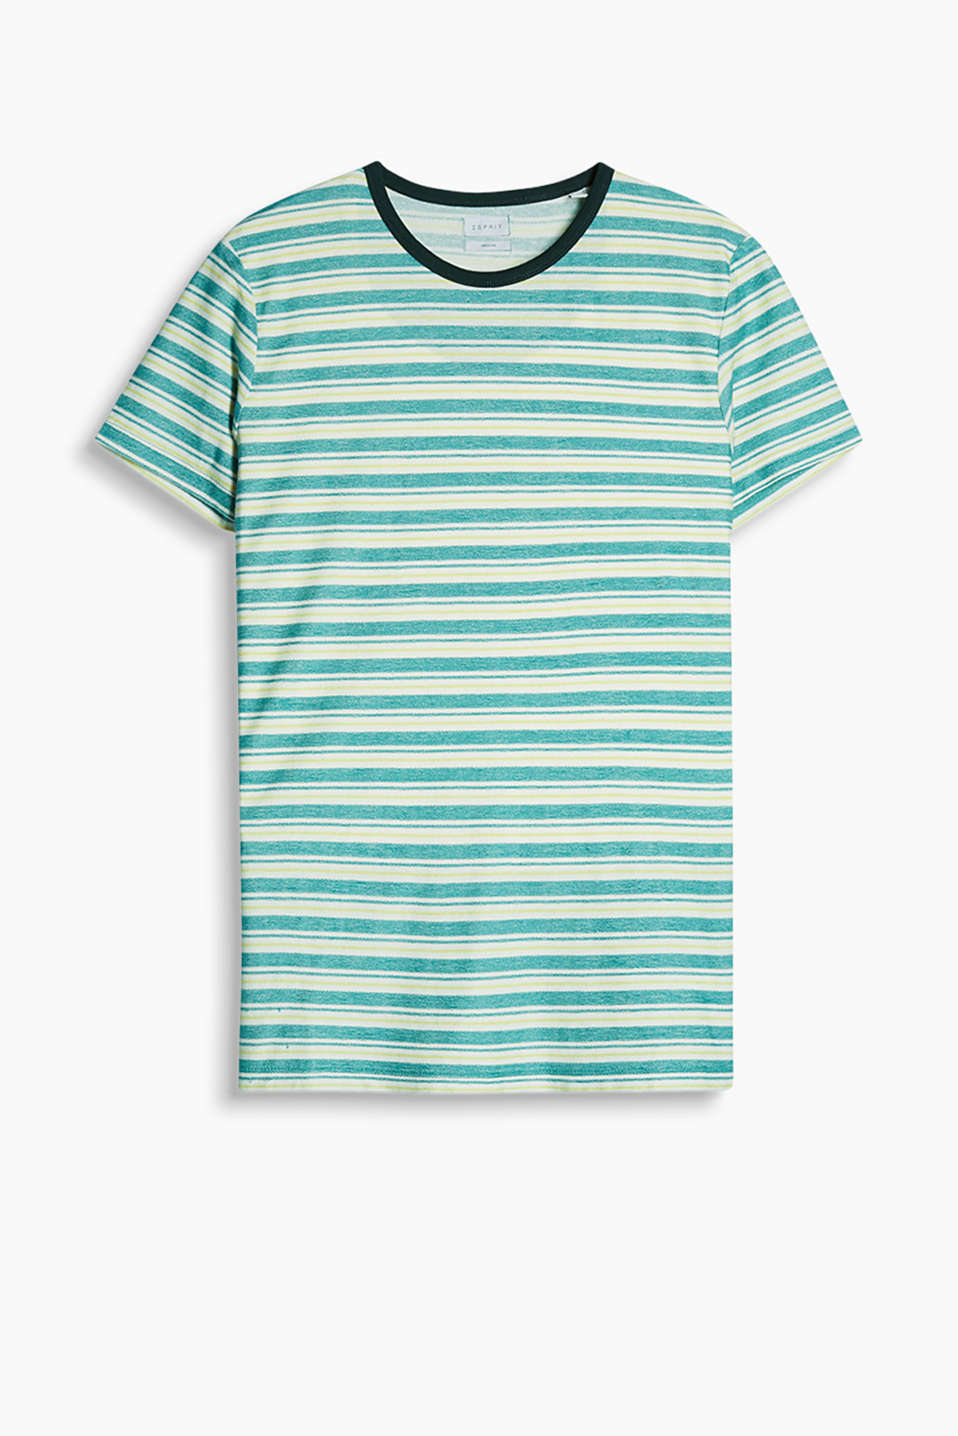 Textured T-shirt with a brightly coloured stripe pattern and contrasting colour piping along the round neckline